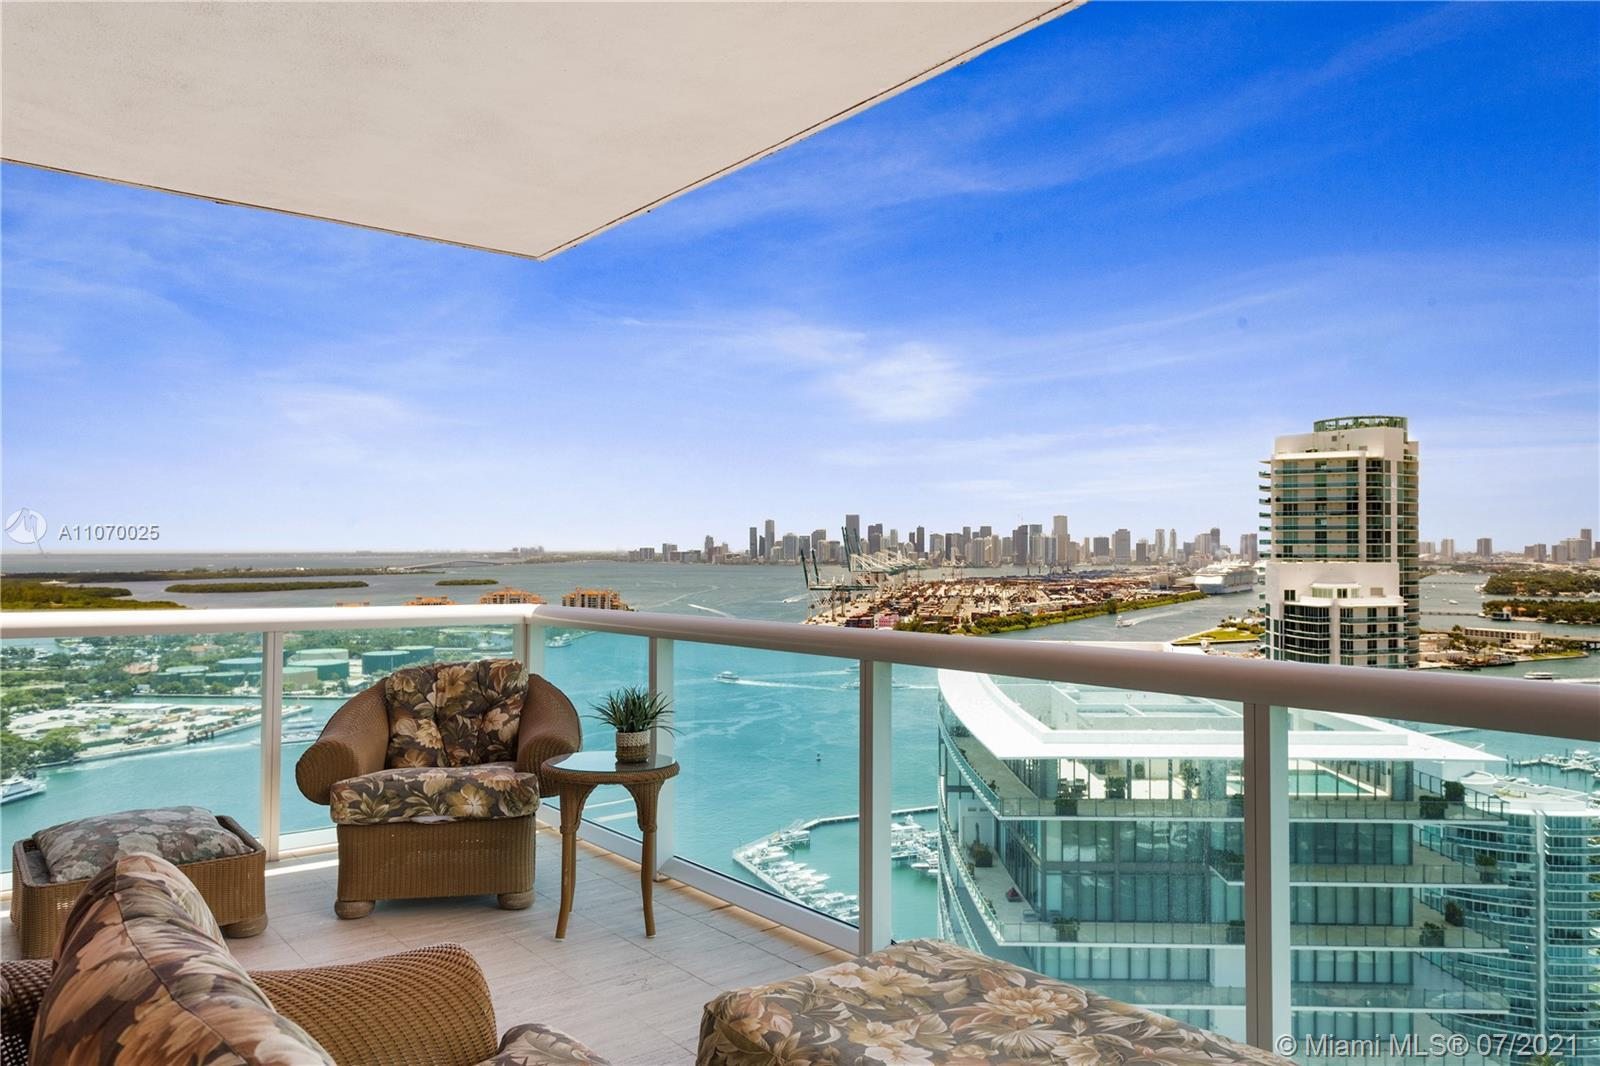 Incredible 3 bed/ 3,5 bath residence w/over 2,500 SF of living area + 2 balconies at the Iconic Port